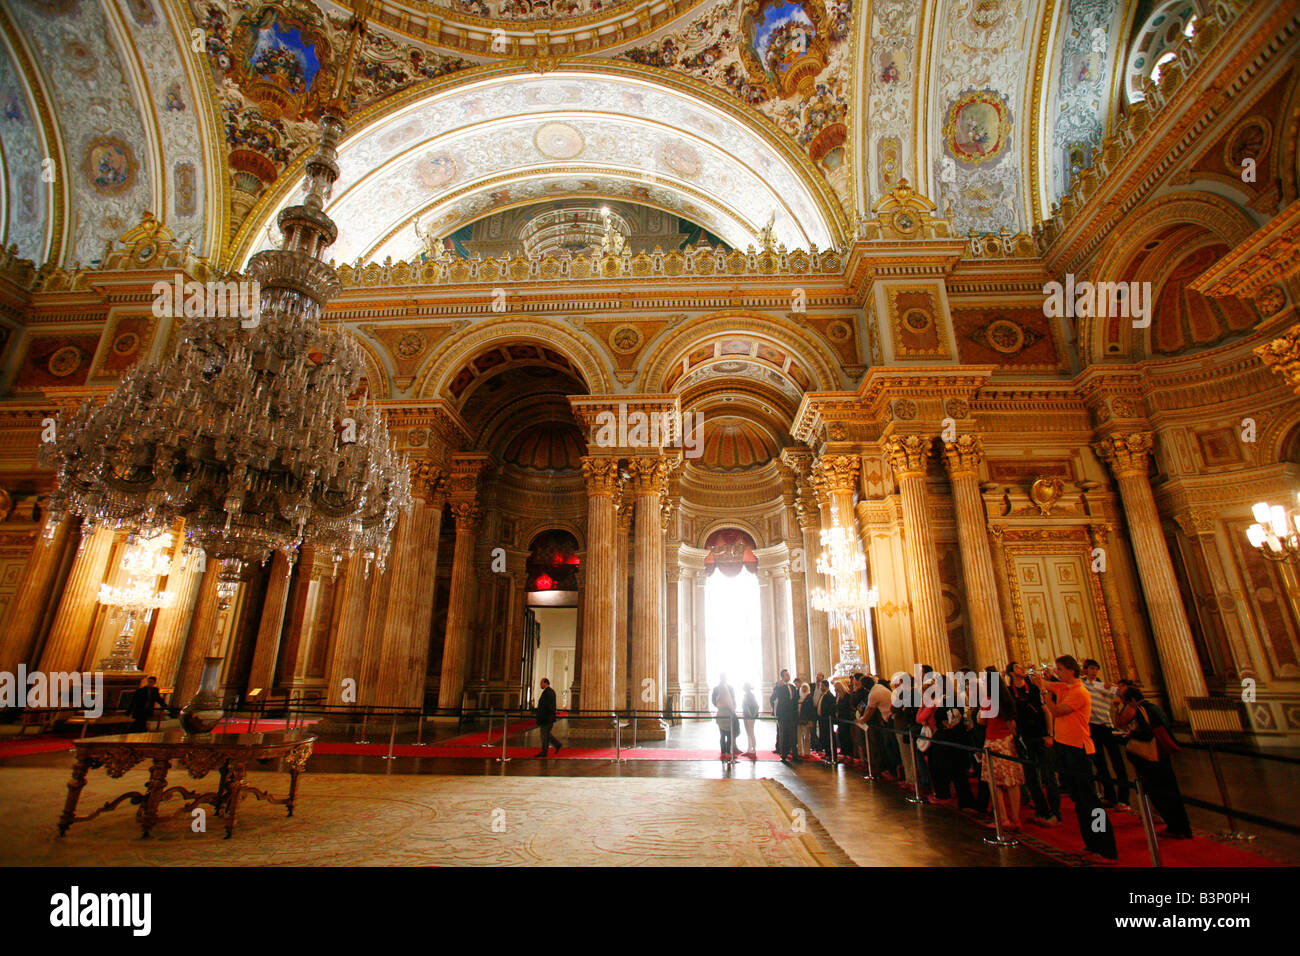 May 2008 - Dolmabahce Palace the Ceremonial Hall Istanbul Turkey - Stock Image